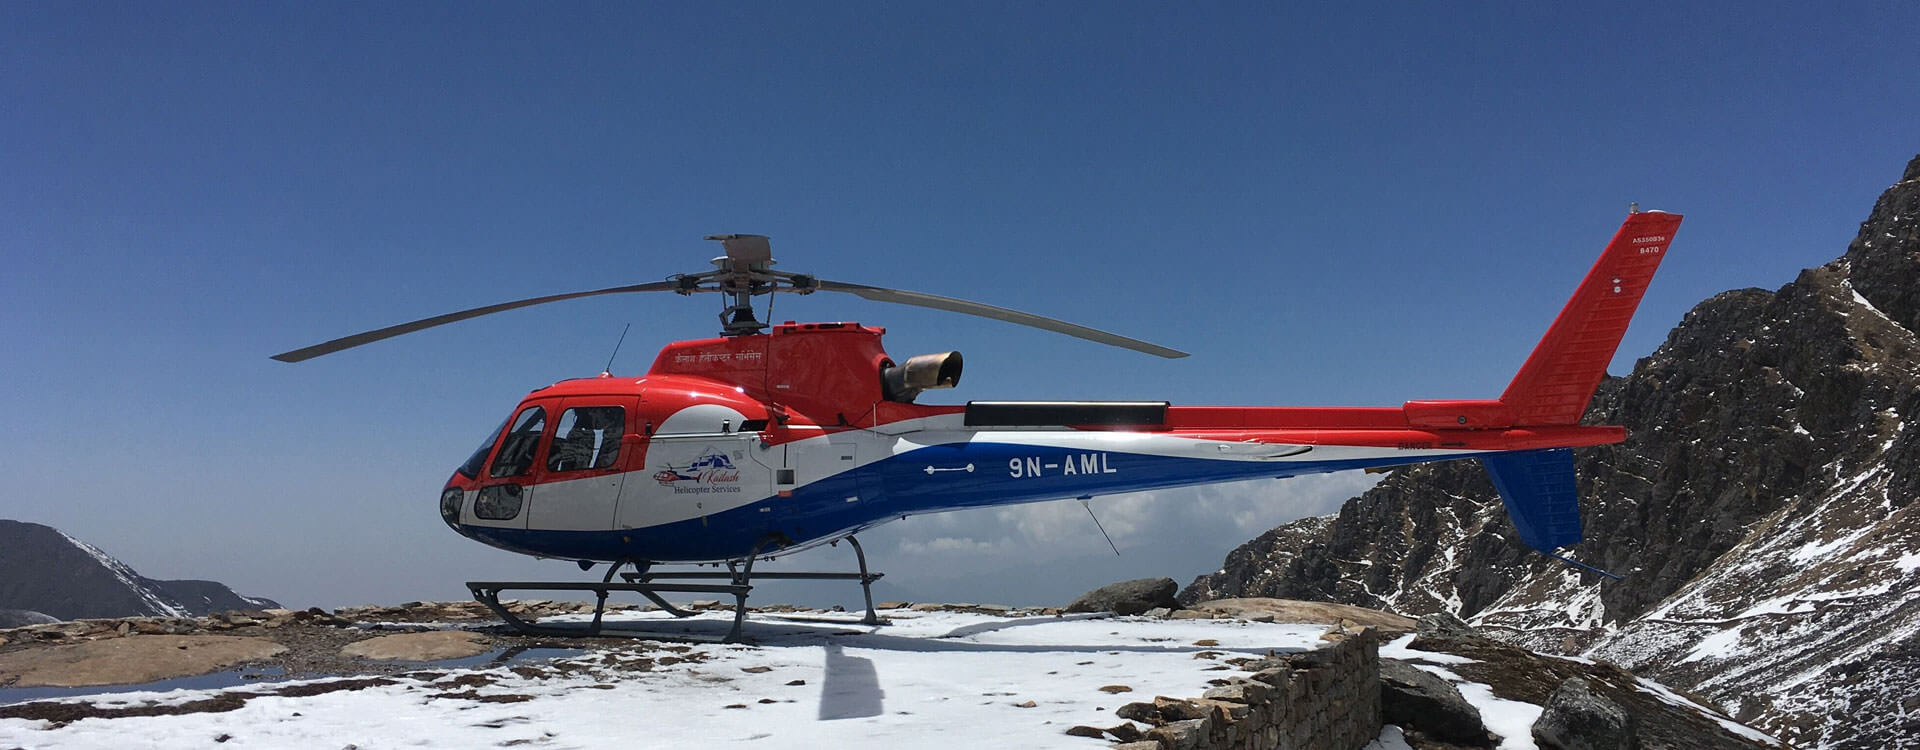 everest-base-camp-helicopter day-tour jpeg